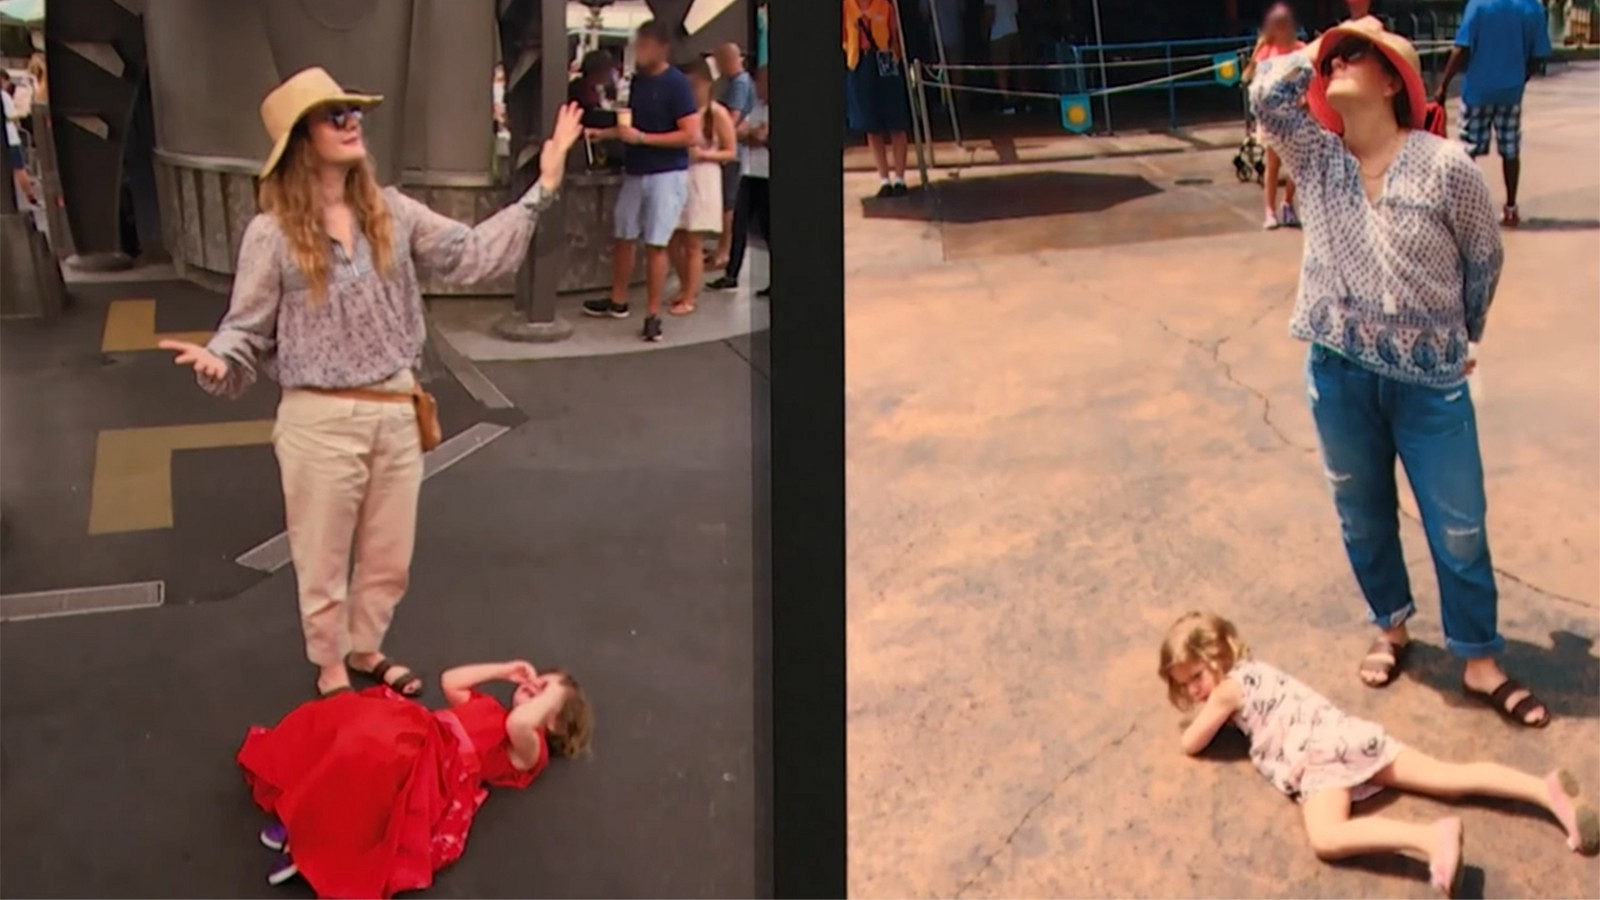 Drew Barrymore turns daughter's Disney tantrums into photo op ... The Today Show1920 × 1080Search by image Drew Barrymore turns daughter's Disney tantrums into photo op - TODAY.com